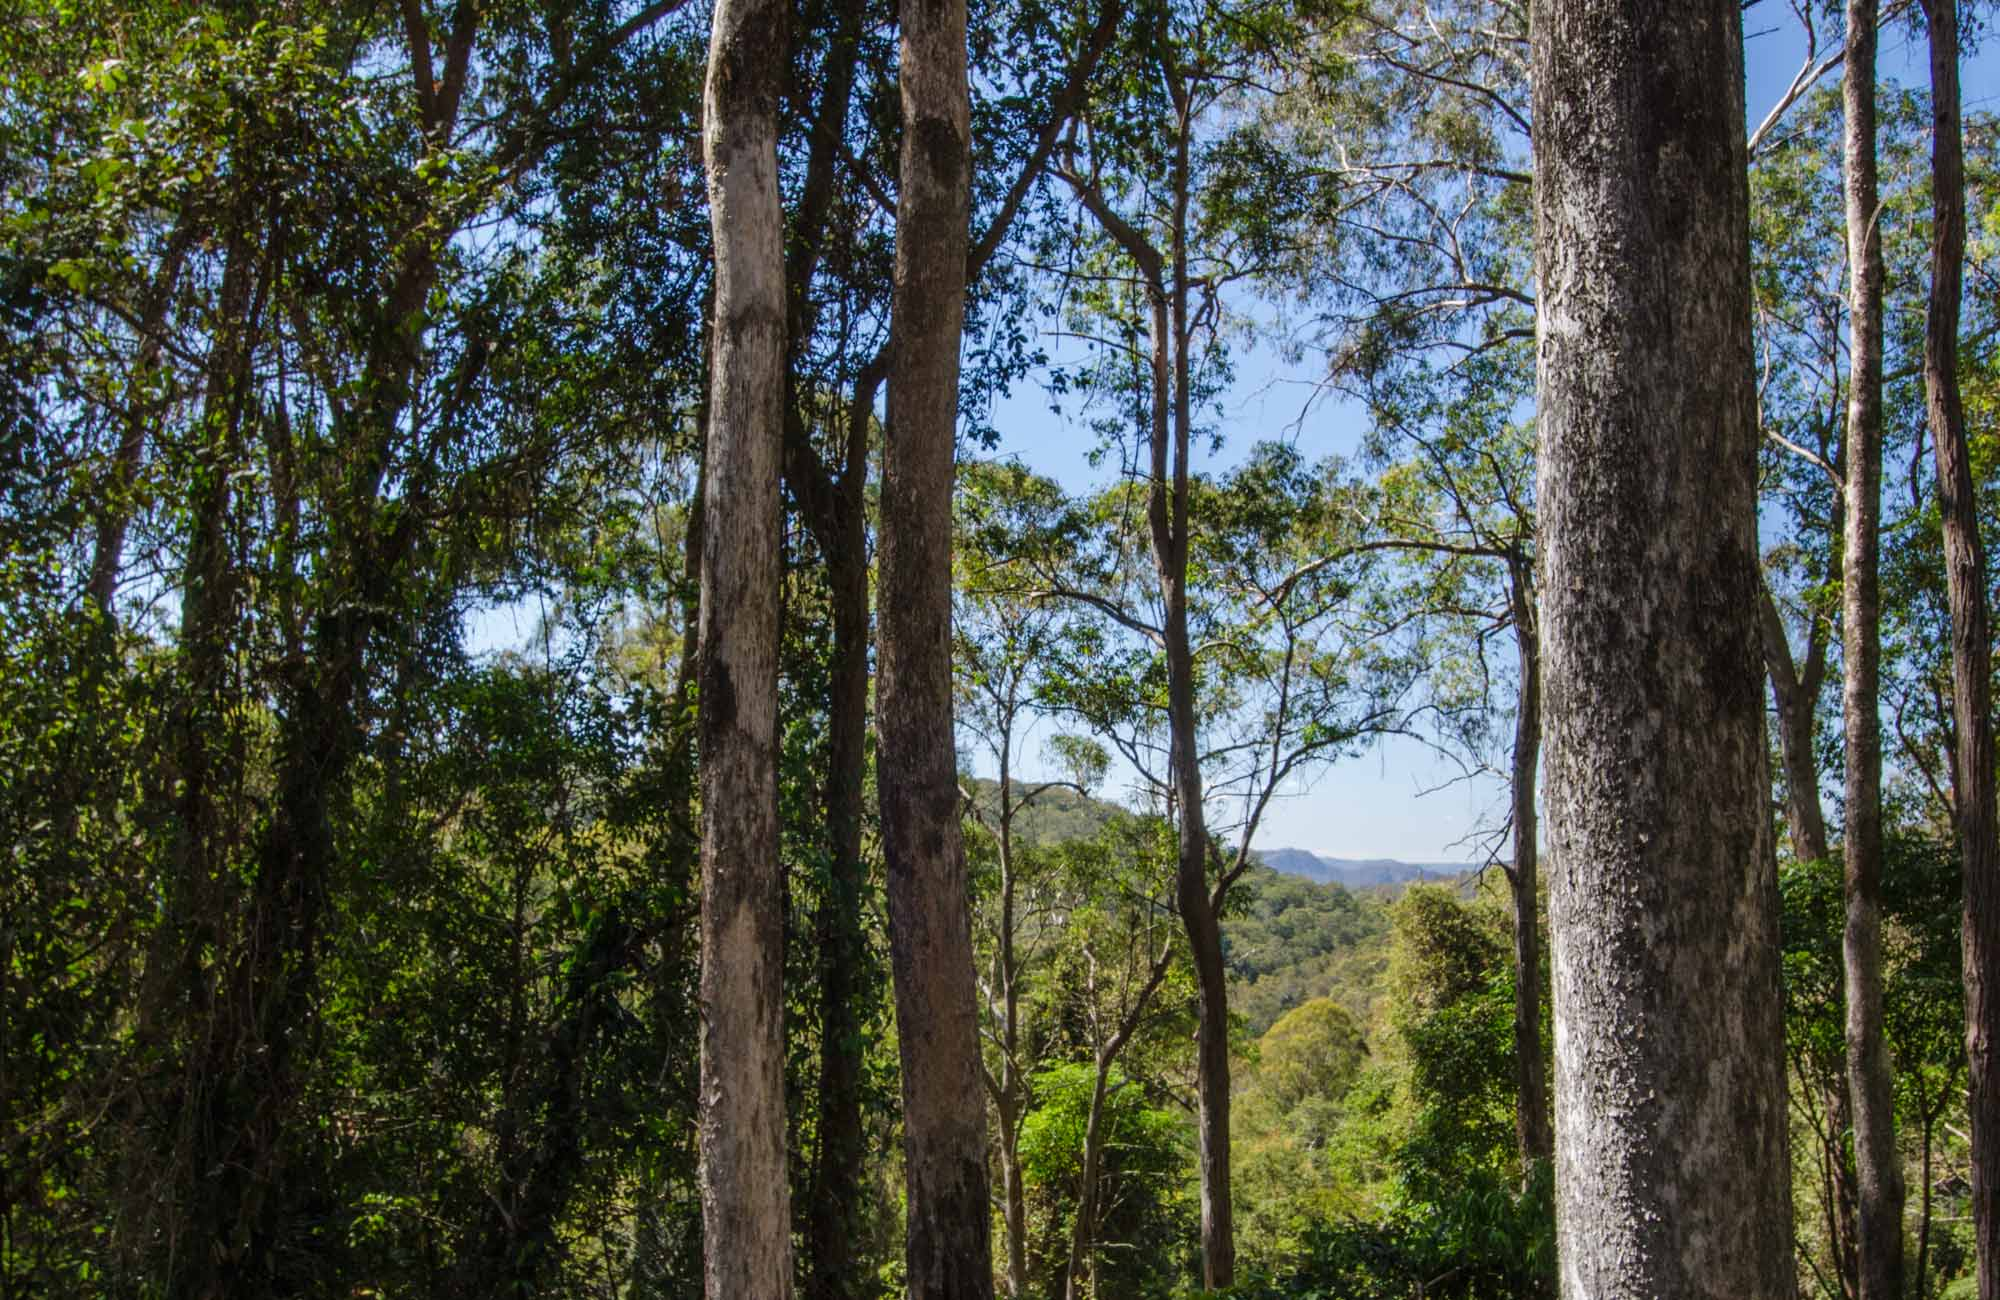 Basin Loop walking track, Copeland Tops State Conservation Area. Photo: John Spencer.